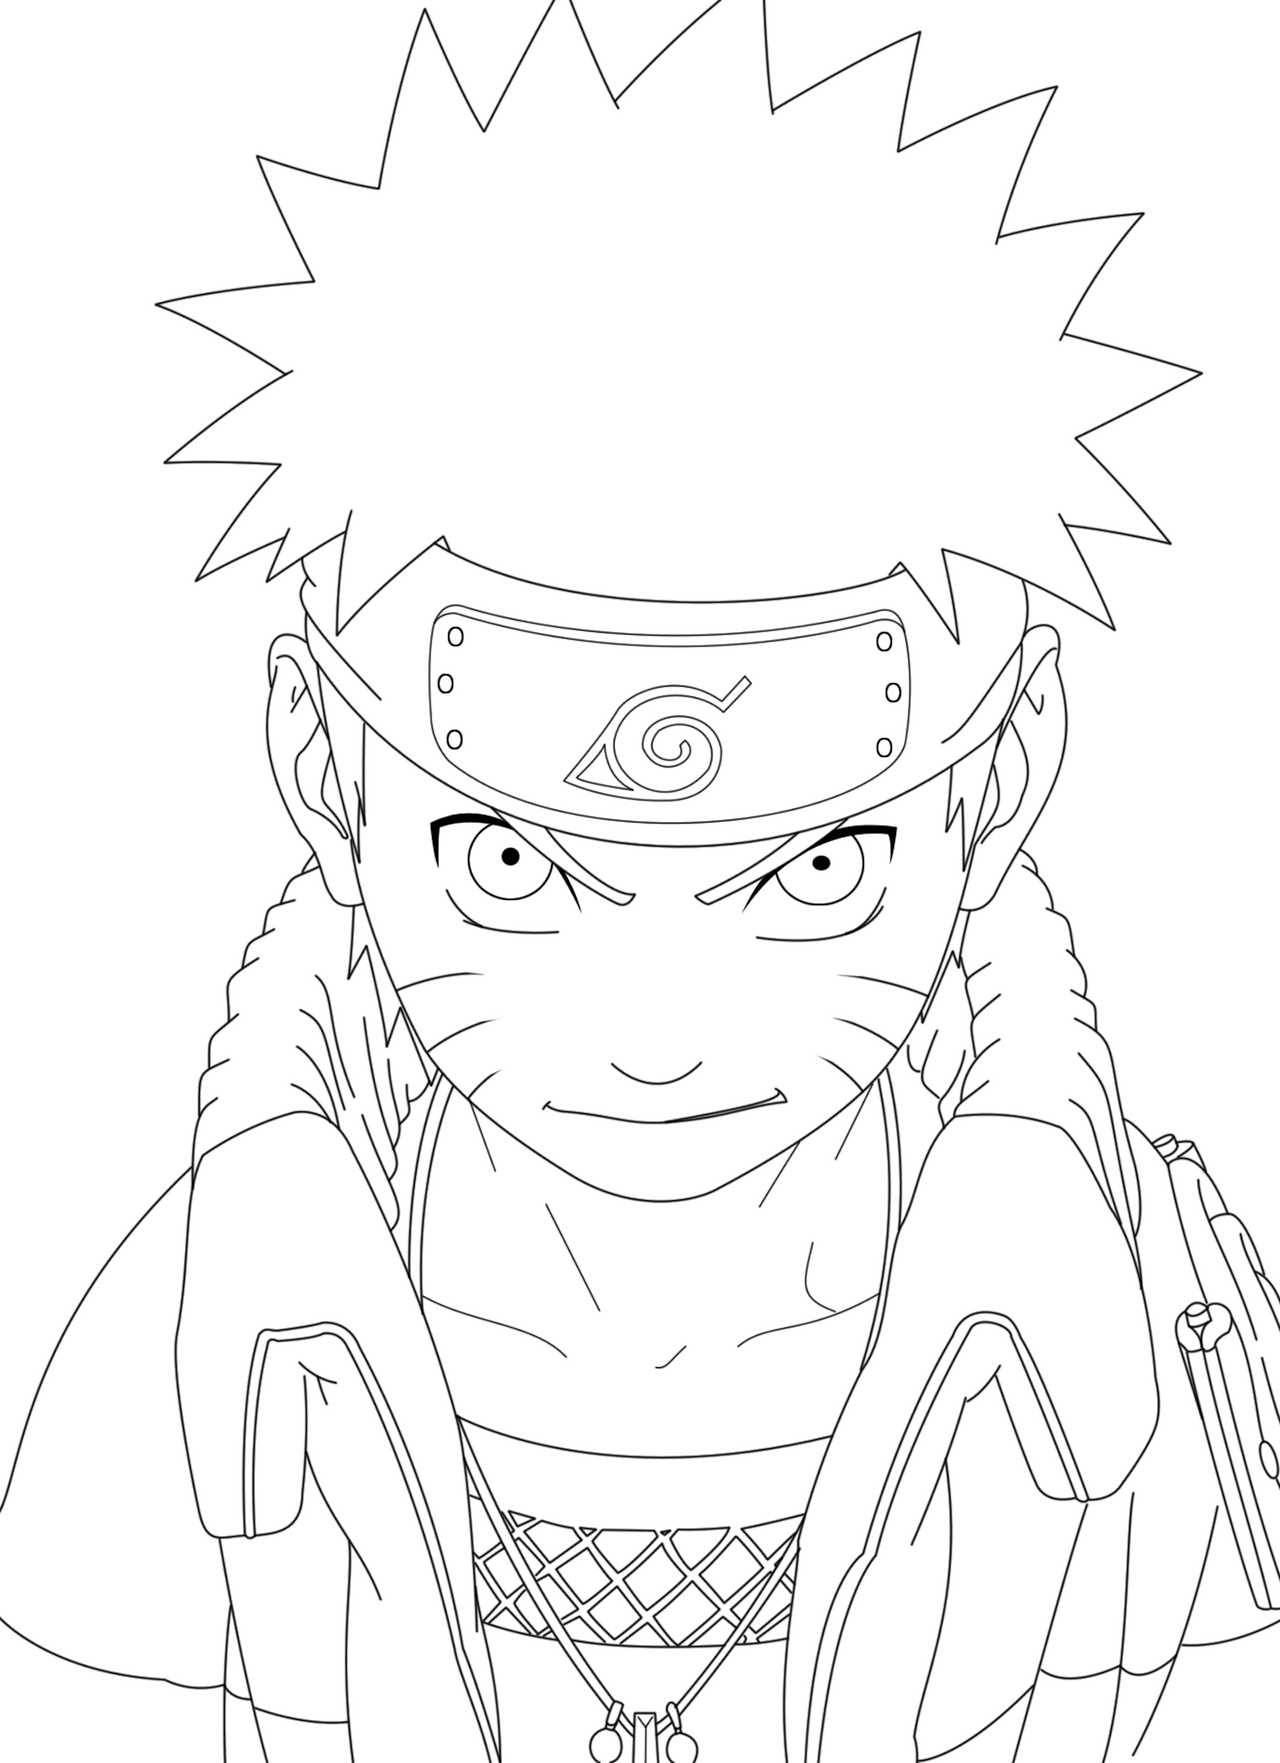 Line Art Render : Naruto lineart by crazylz on deviantart